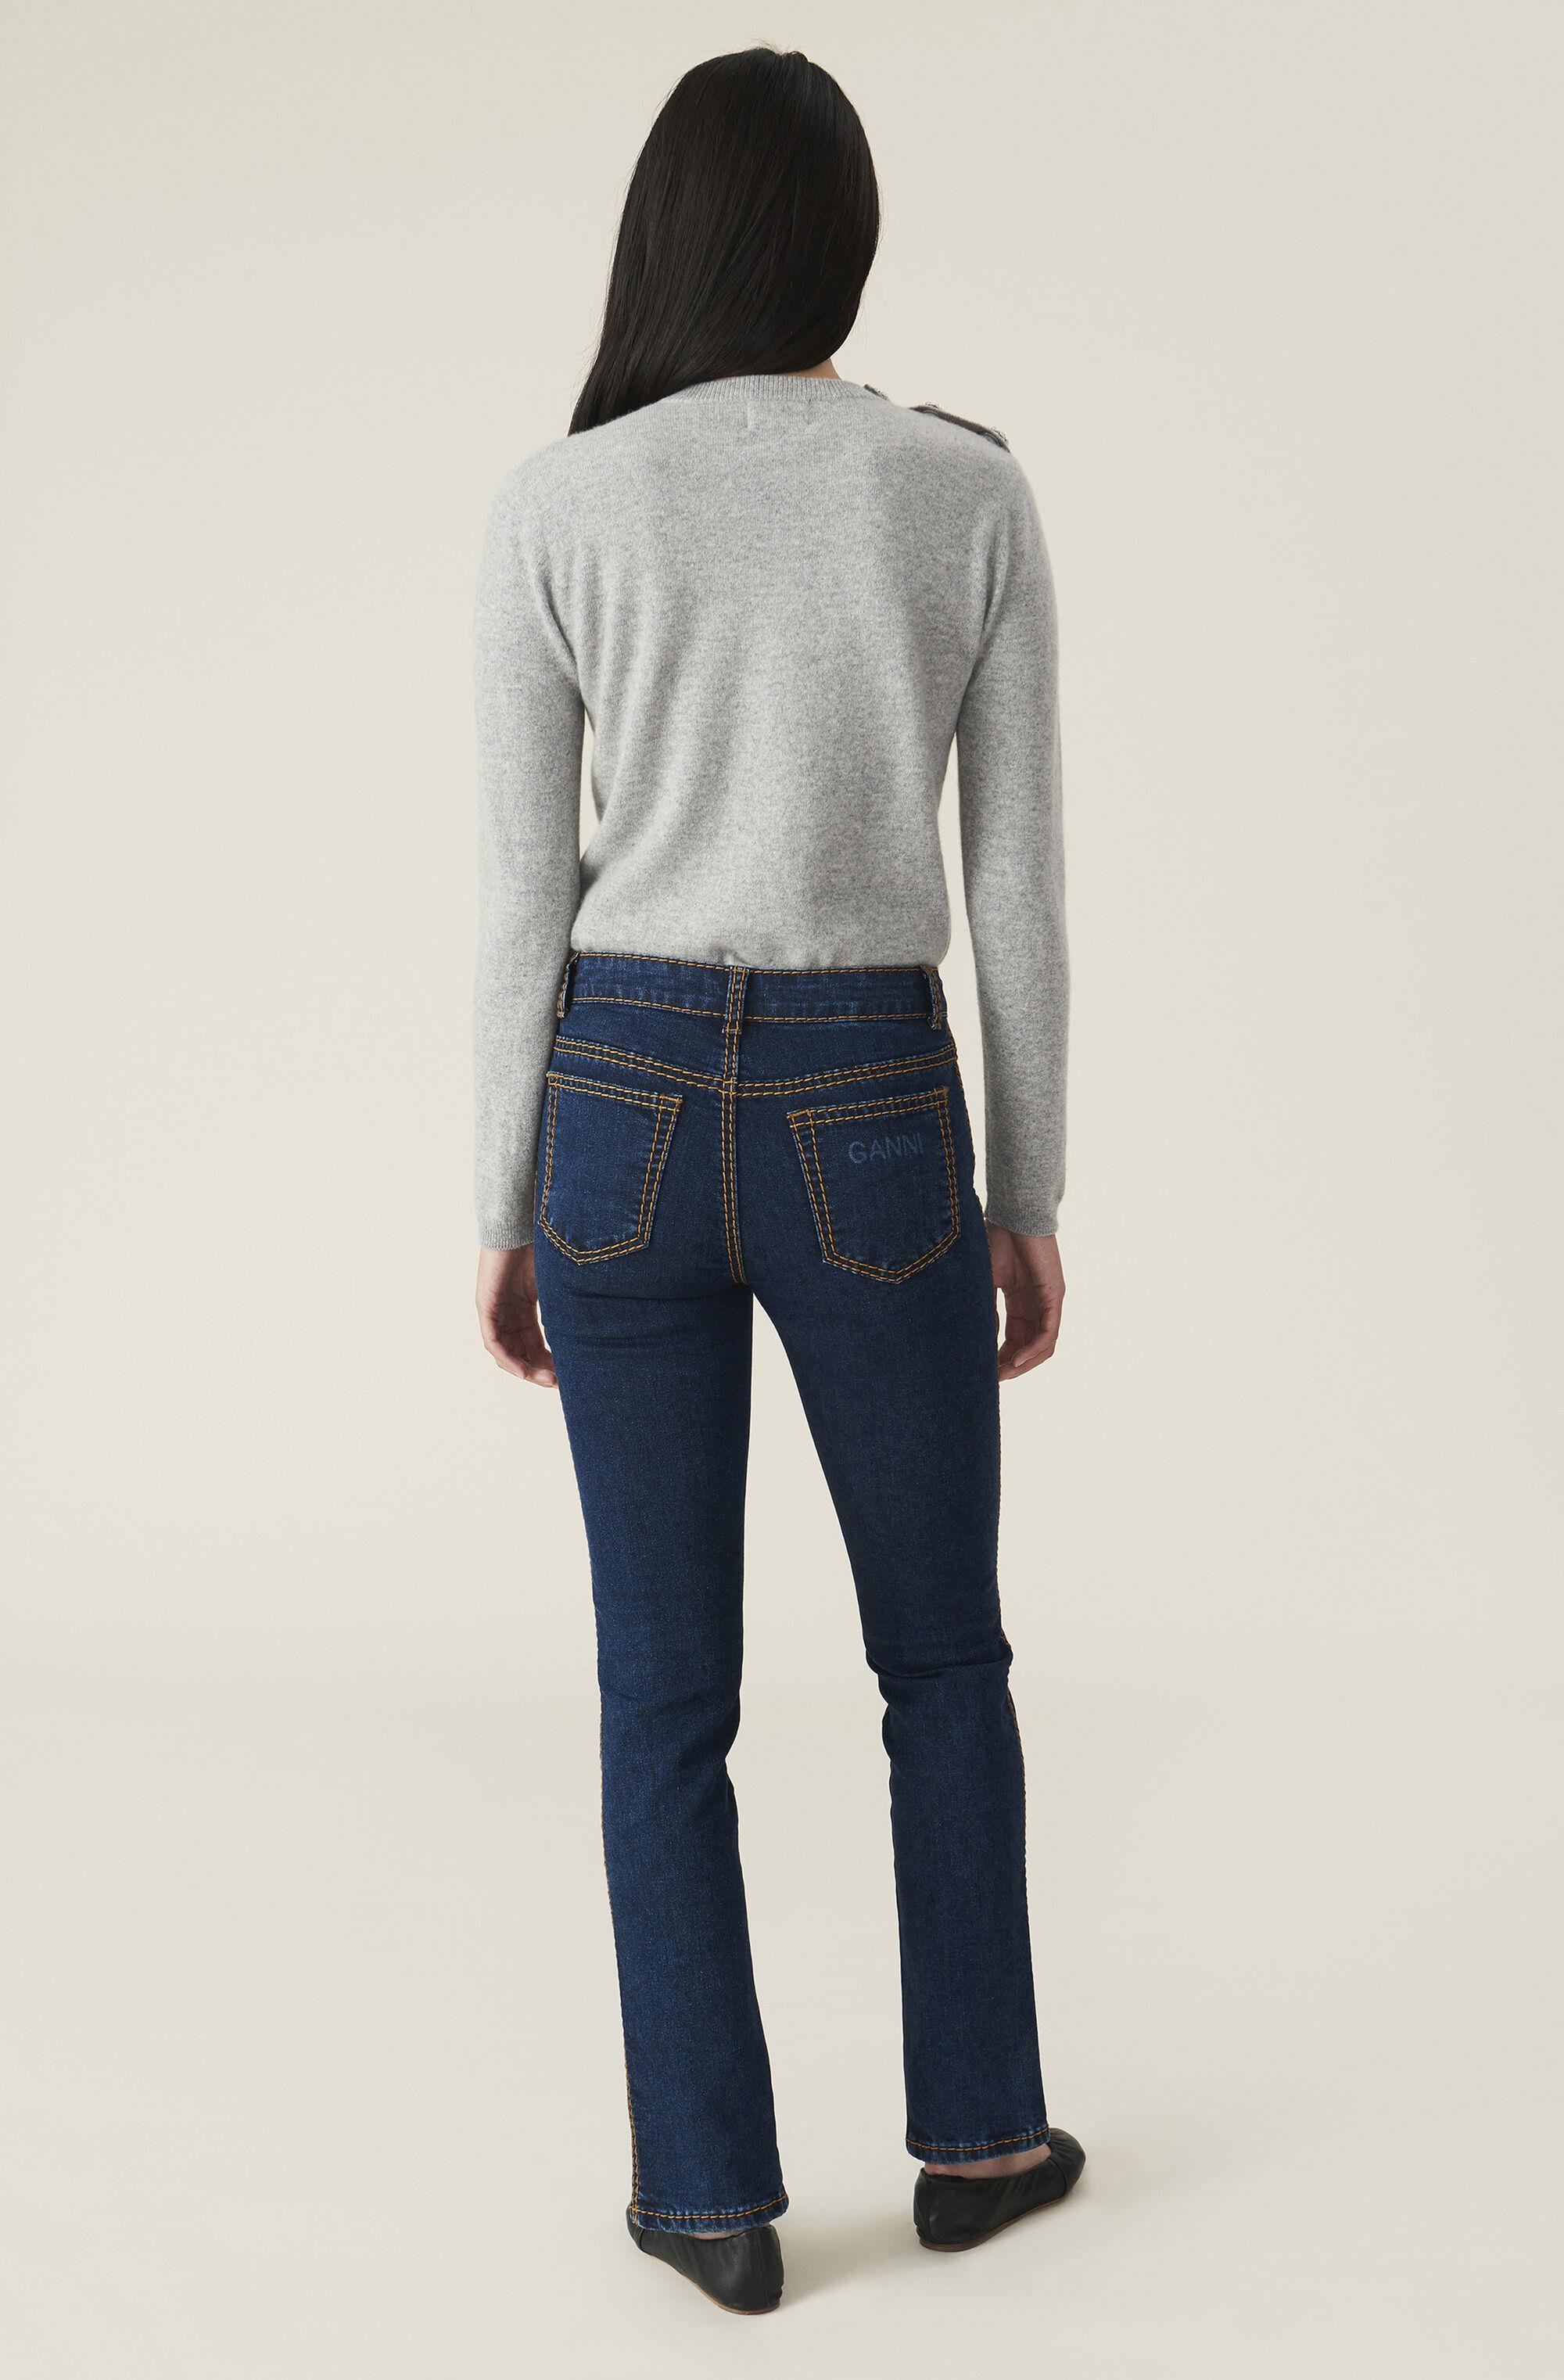 Cashmere Knit Pullover - Solid 2